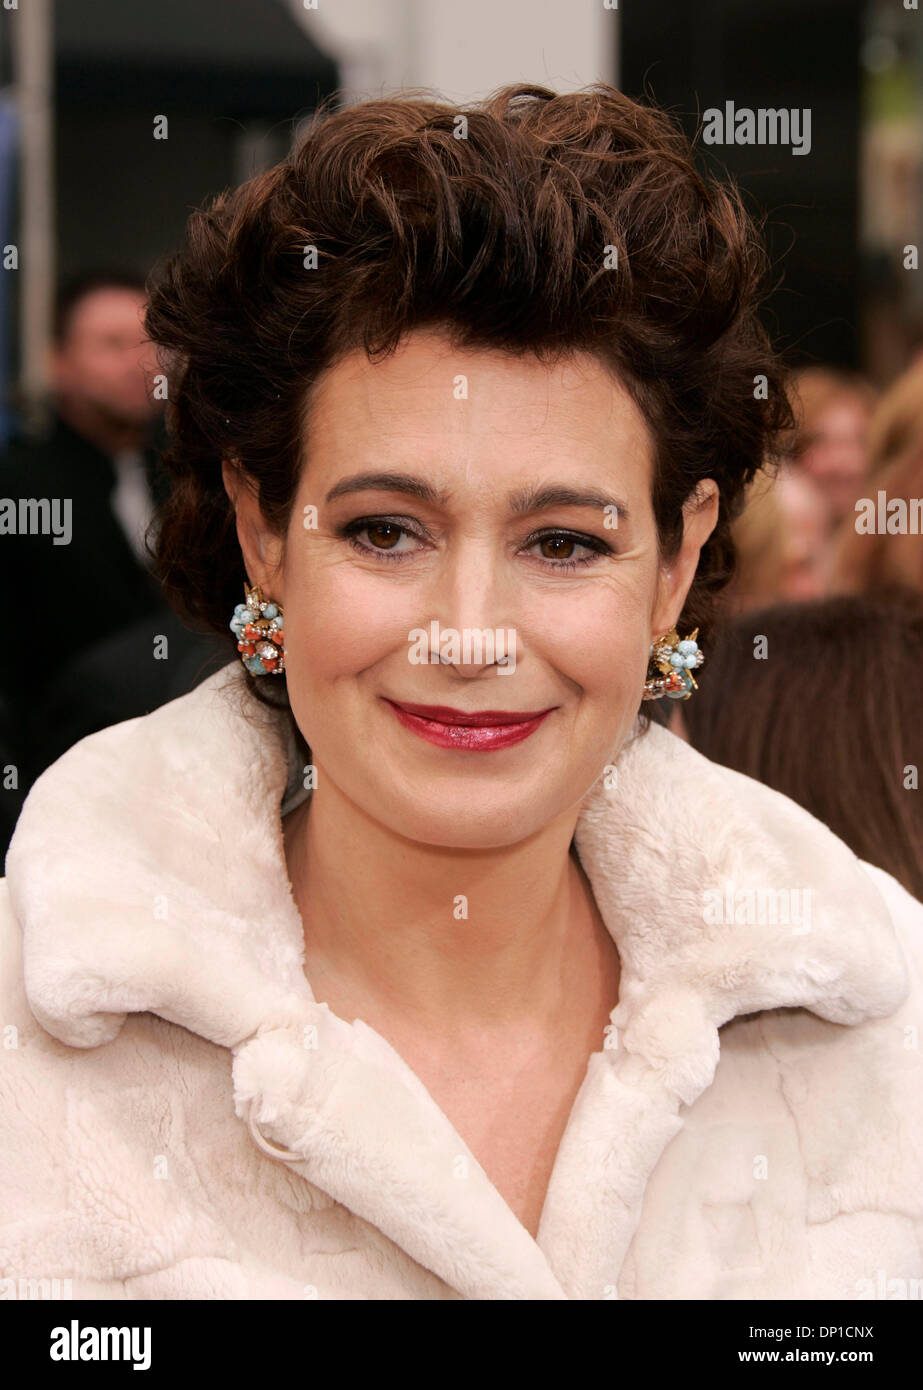 Sean Young photo gallery - high quality pics of Sean Young